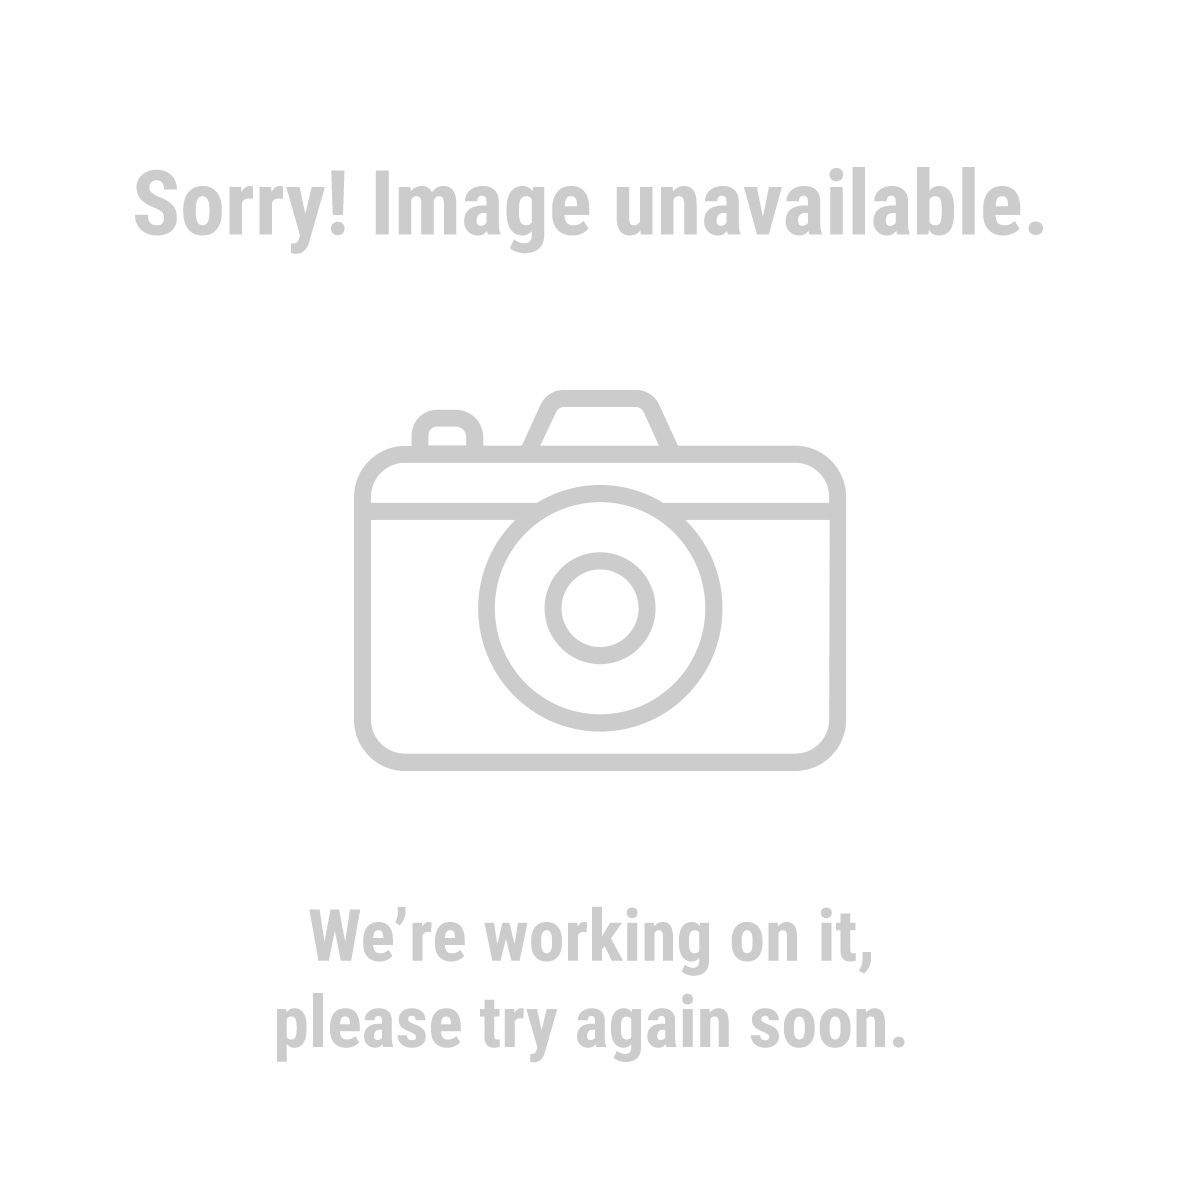 47302 4 Piece Ball Stretch Cord Set